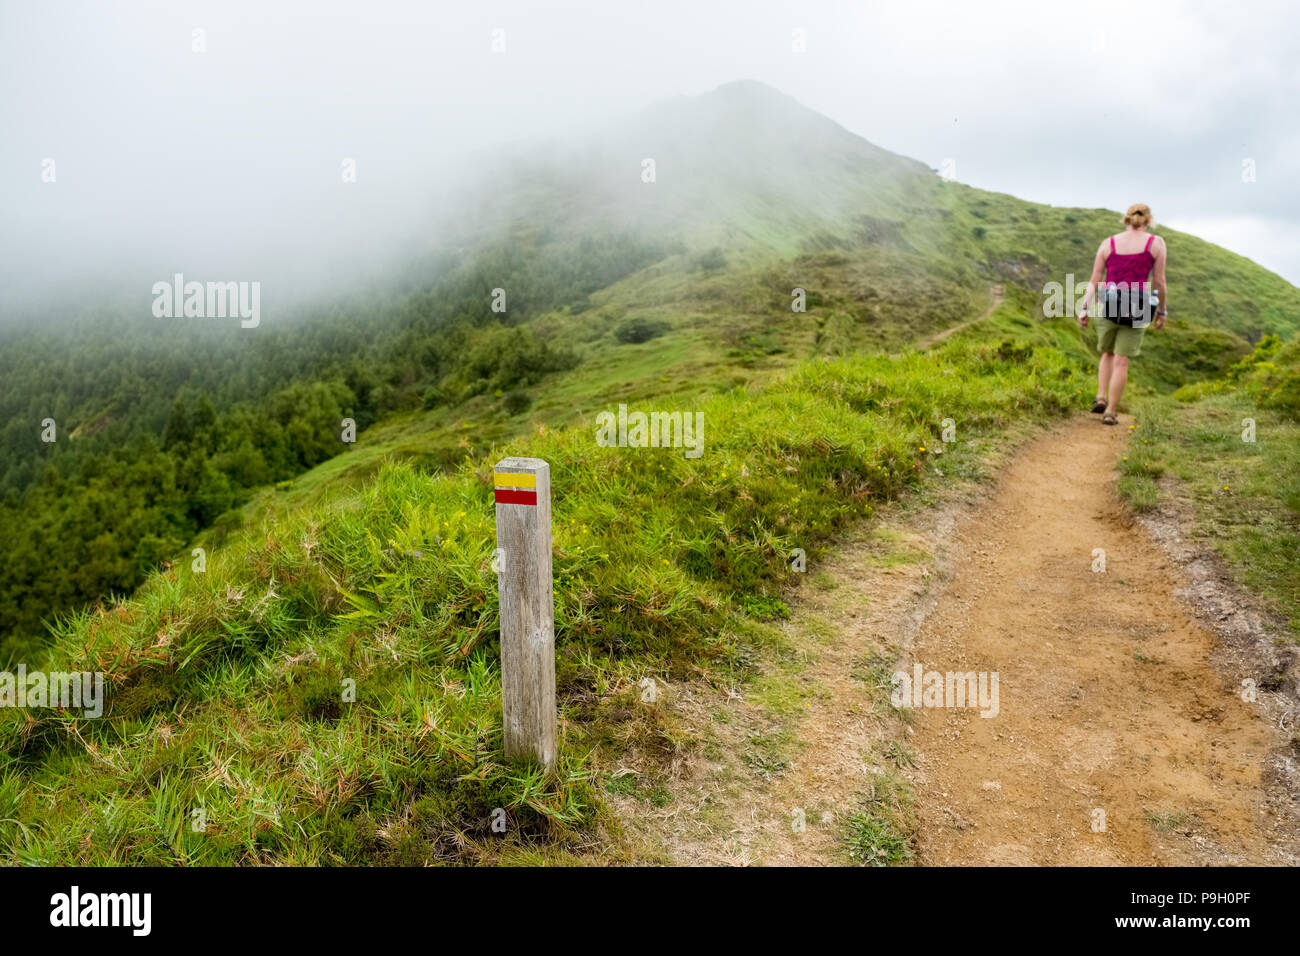 Female walker on trail on The slopes of Pico da Vara, the highest point on Sao Miguel, Azores - Stock Image